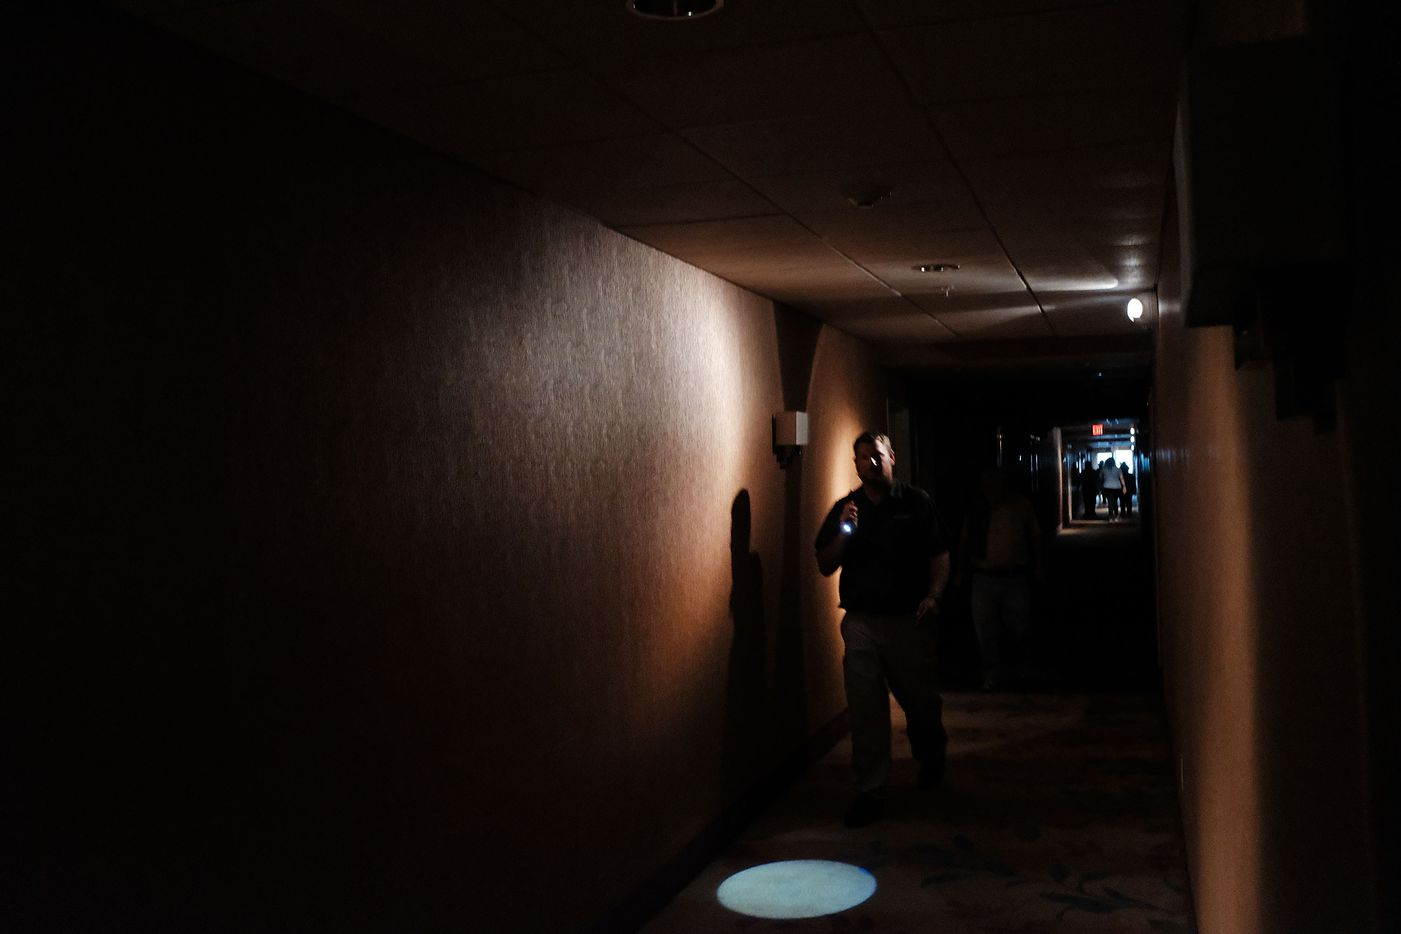 Hotel guests walk through dark hallways after the electricity was cut at a hotel as Hurricane Irma arrives into southwest Florida on September 10, 2017 in Fort Myers, Florida. With businesses closed, thousands in shelters and a mandatory evacuation in coastal communities, the Fort Myers area is preparing for a possibly catastrophic storm.